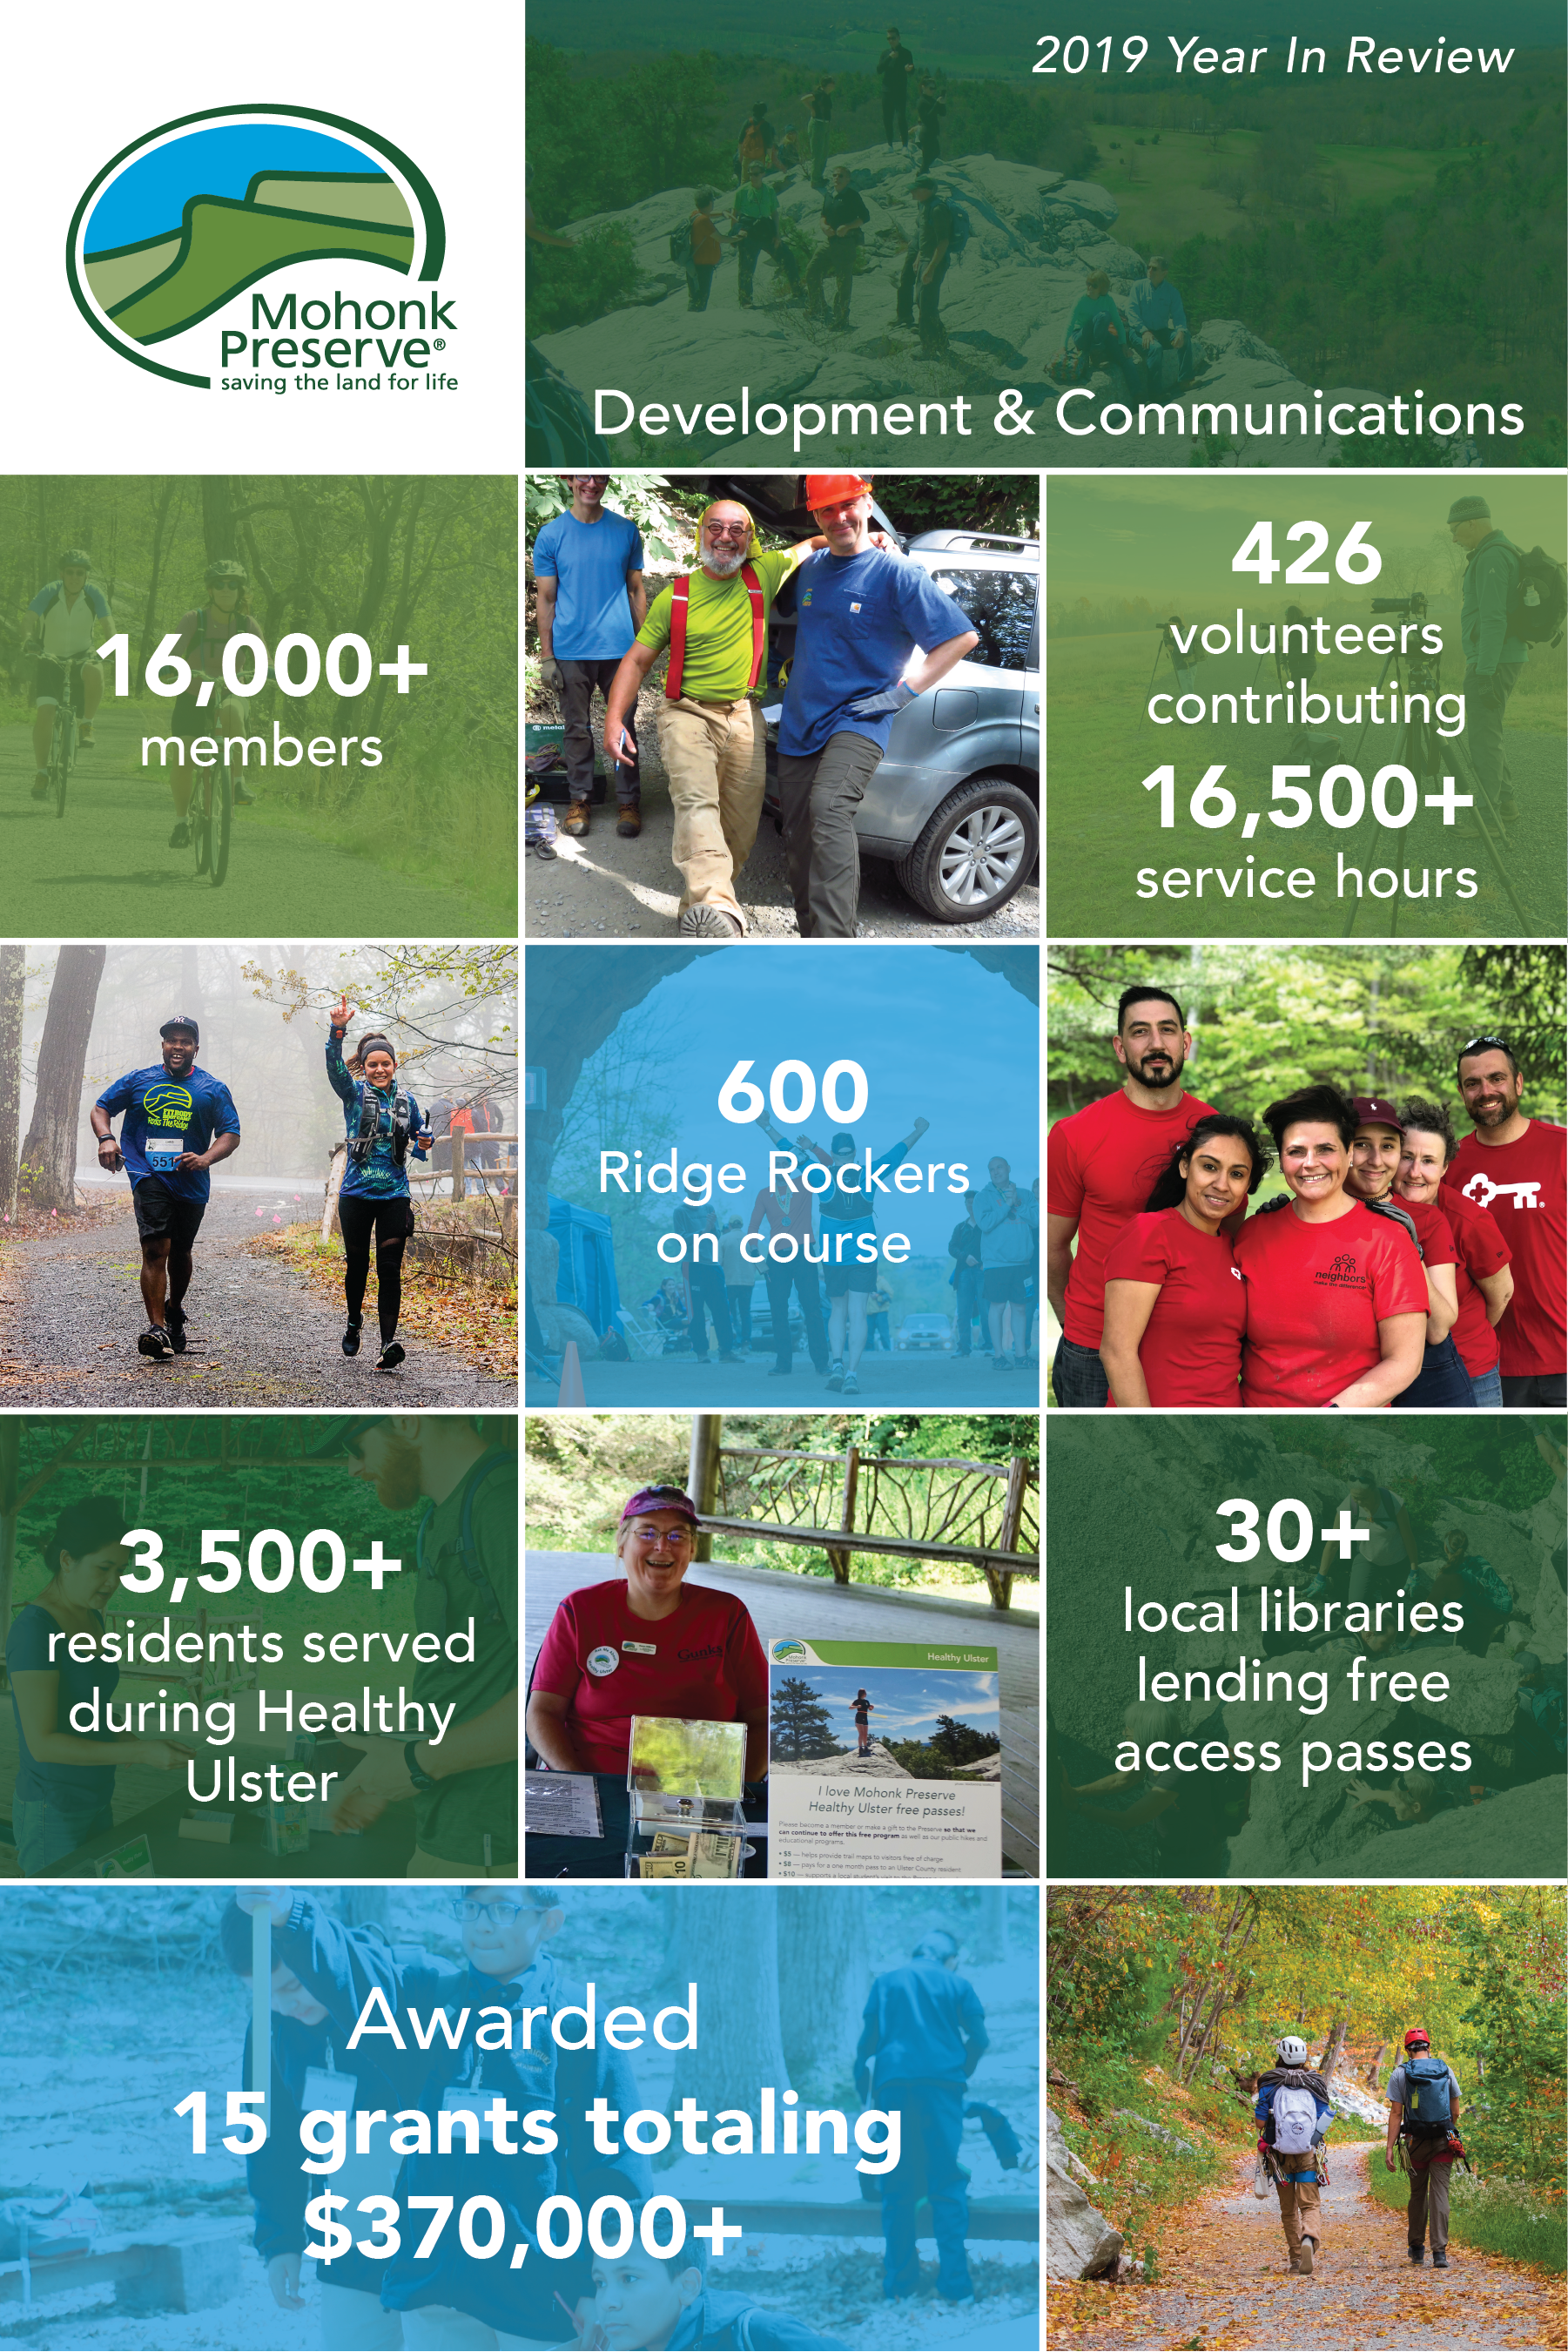 2019 Year In Review: Development & Communications, 16,000+ members, 426 volunteers contributing 16,500+ service hours, 600 Ridge Rockers on course, 3,500+ residents served during Healthy Ulster, 30+ local libraries lending free access passes, Awarded 15 grants totaling $370,000+